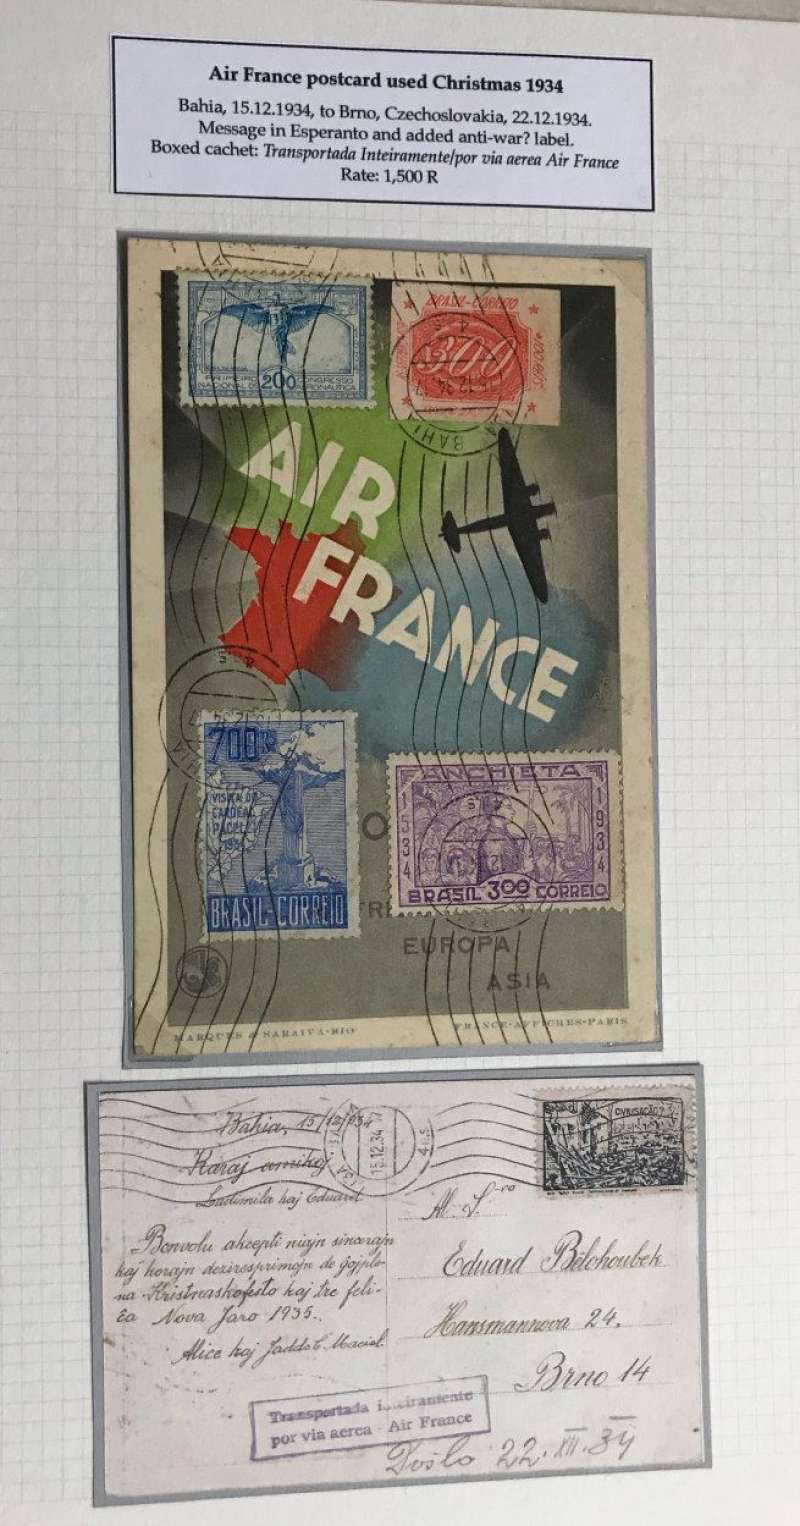 (Ephemera) Air France 1939/40 promotional festive season PPC used Christmas 1934 flown from Bahia, Brasil to Brno, Checkoslovakia, showing silhouette of an airplane above a map of France on green/blue and grey background, reproduced form an Air France poster. Verso, a message in ESPERANTO, a boxed cachet in Portuguese 'Carried entirely by air', and a ? anti war label 'CIVILISACAO' (Civilisation). Franked at the concessionary rate of 1500r, stamps mounted on picture side of card, see scan.  A rare and interesting item, not seen by us before.